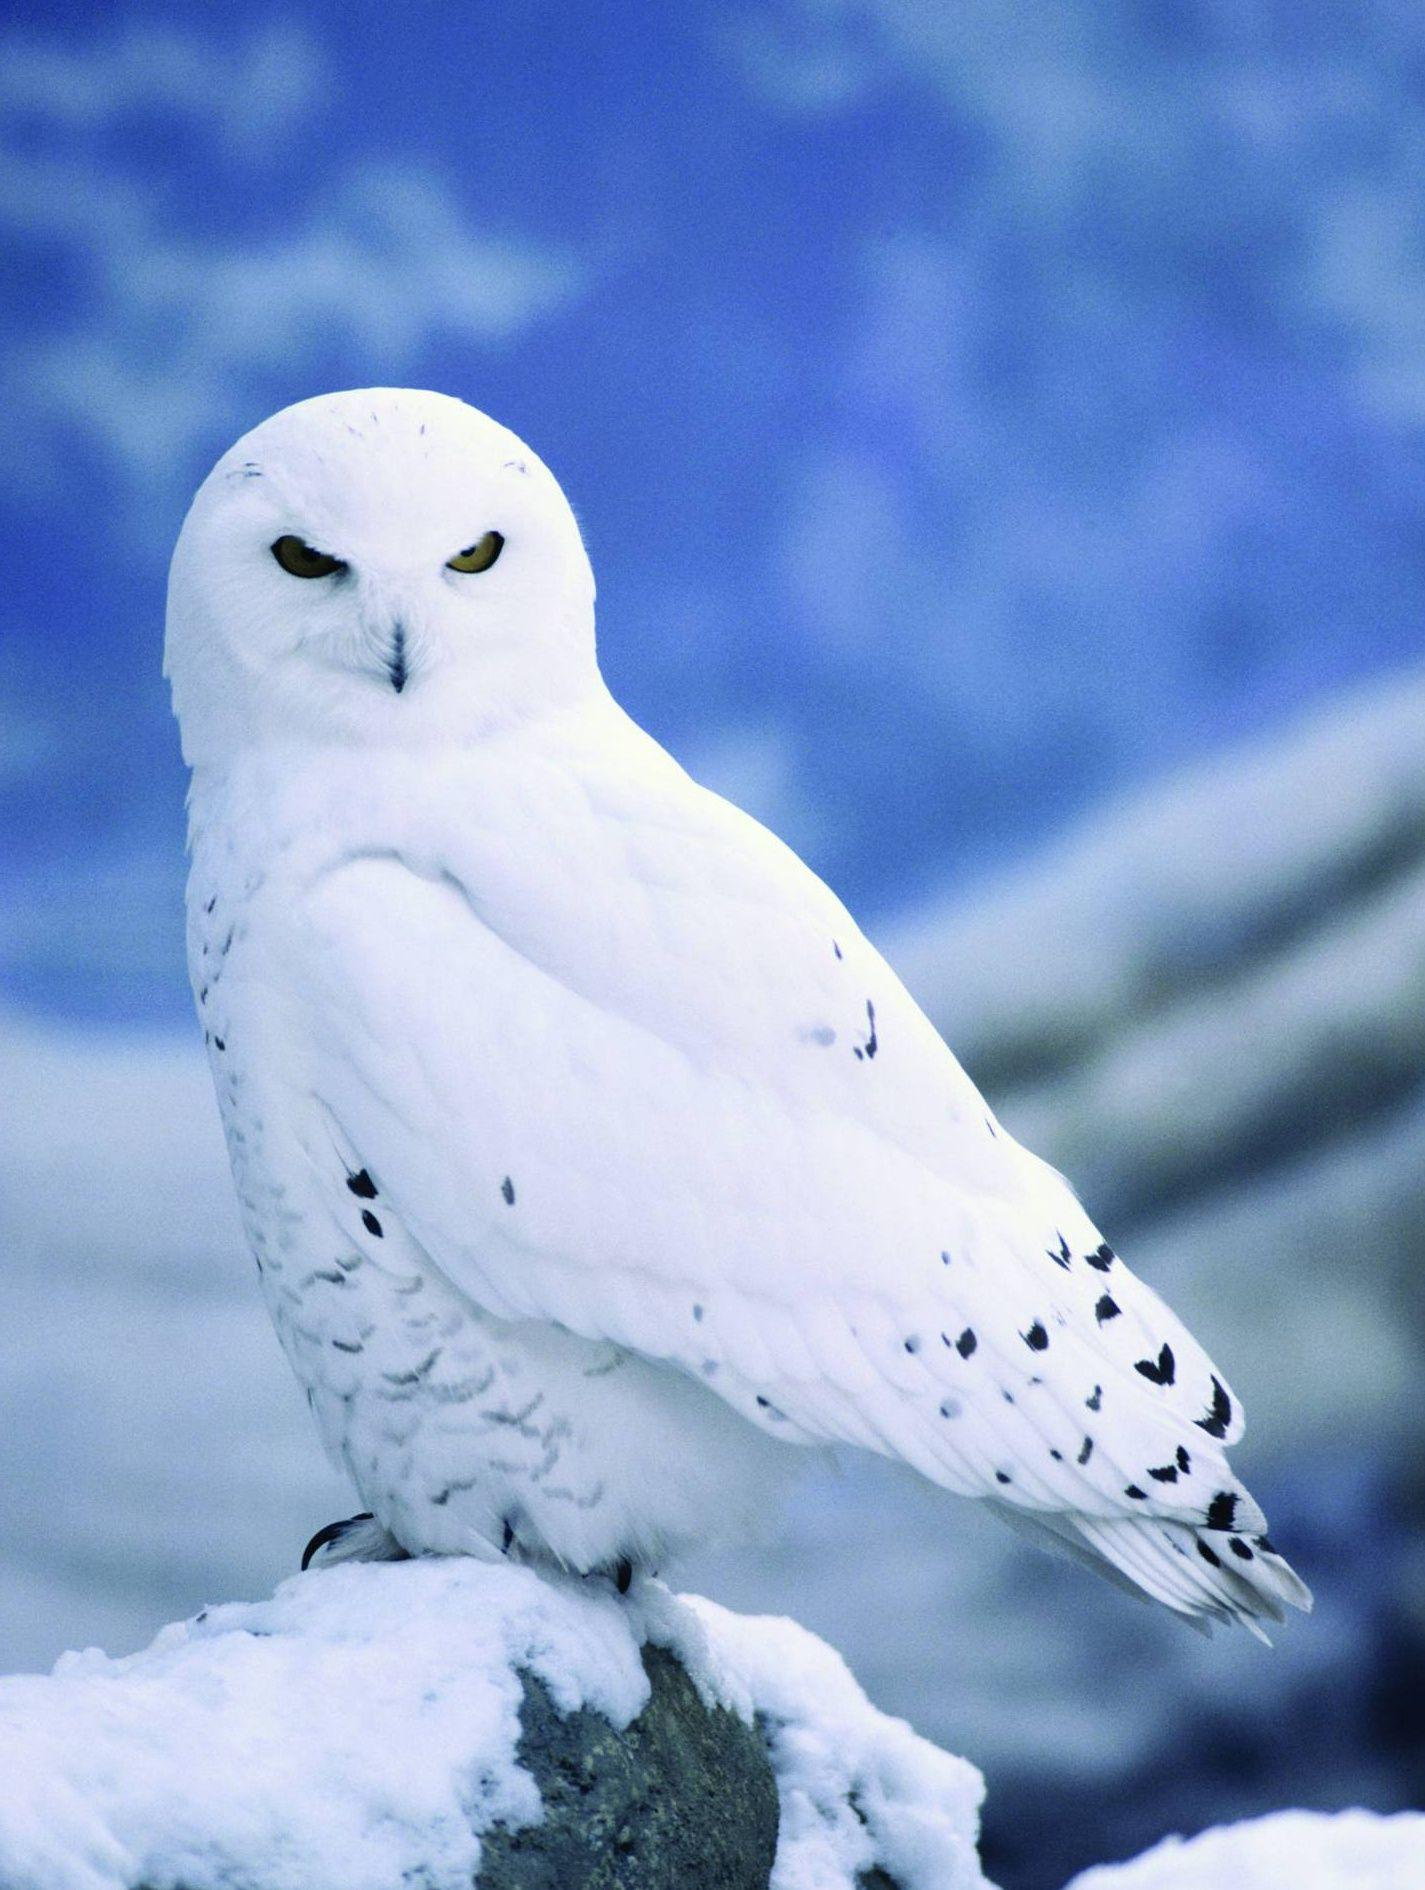 Images of Baby Snowy Owl Desktop Wallpaper - #SC